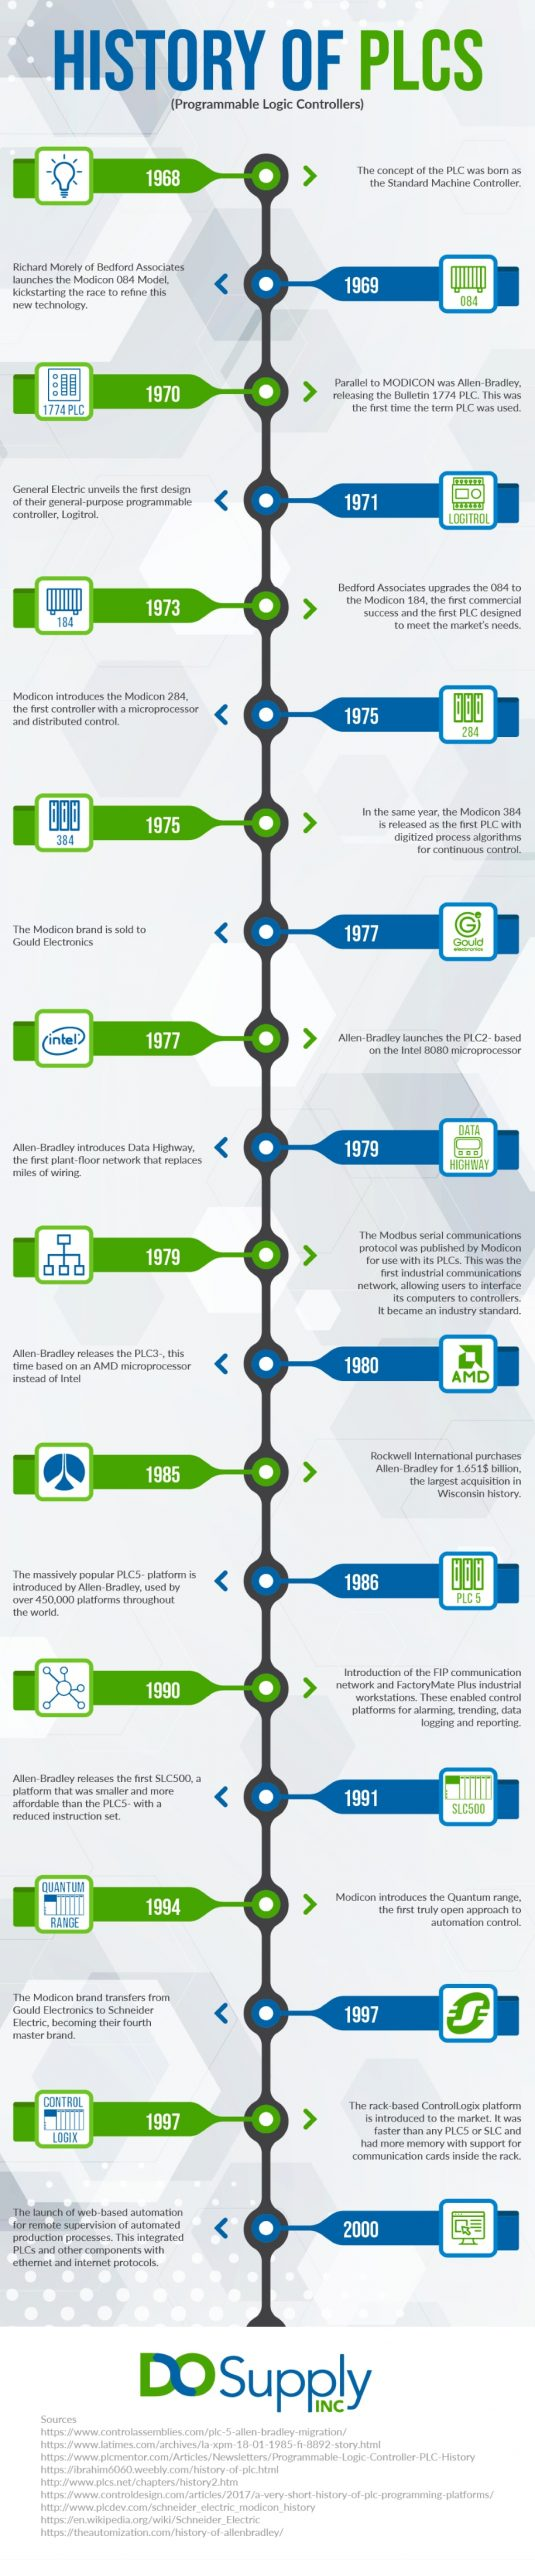 history of plcs infographic